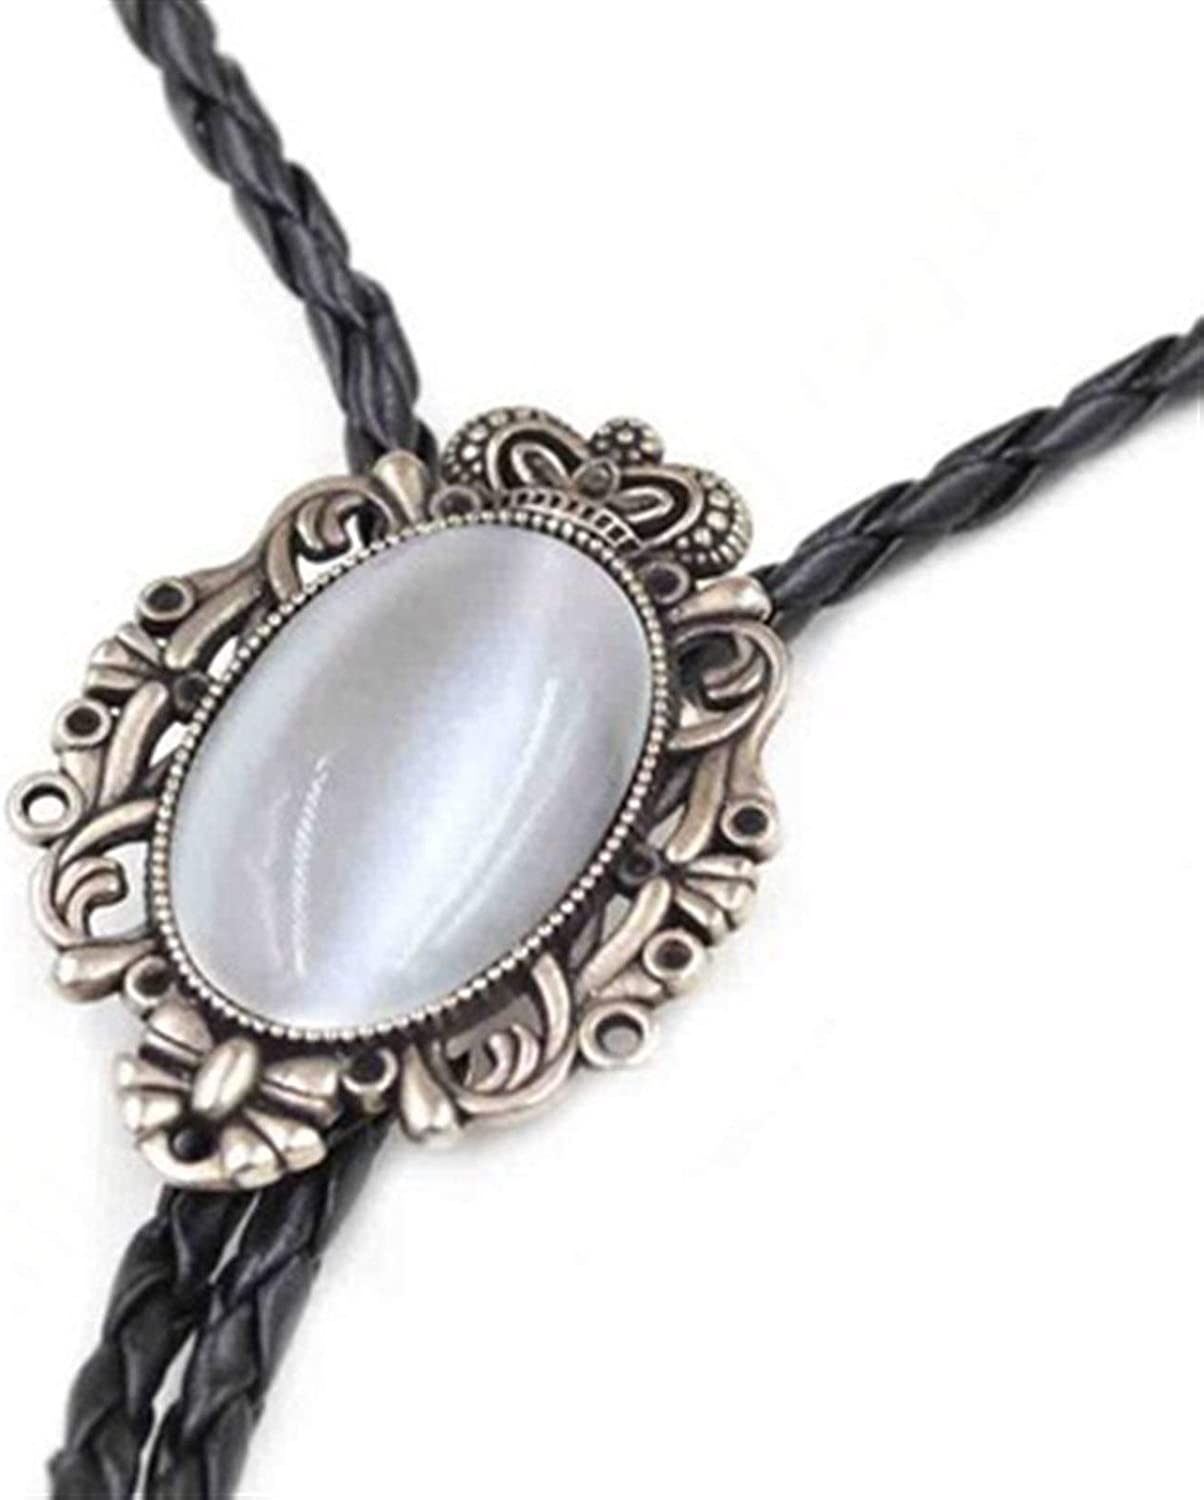 gujiu Western Cowboy Man Bolo tie, Emerald Blue and Black Stone bolo tie Pendant, Sweater Shirt Pendant, Leather Necklace, Clothing Accessories for Men and Women (Color : White)